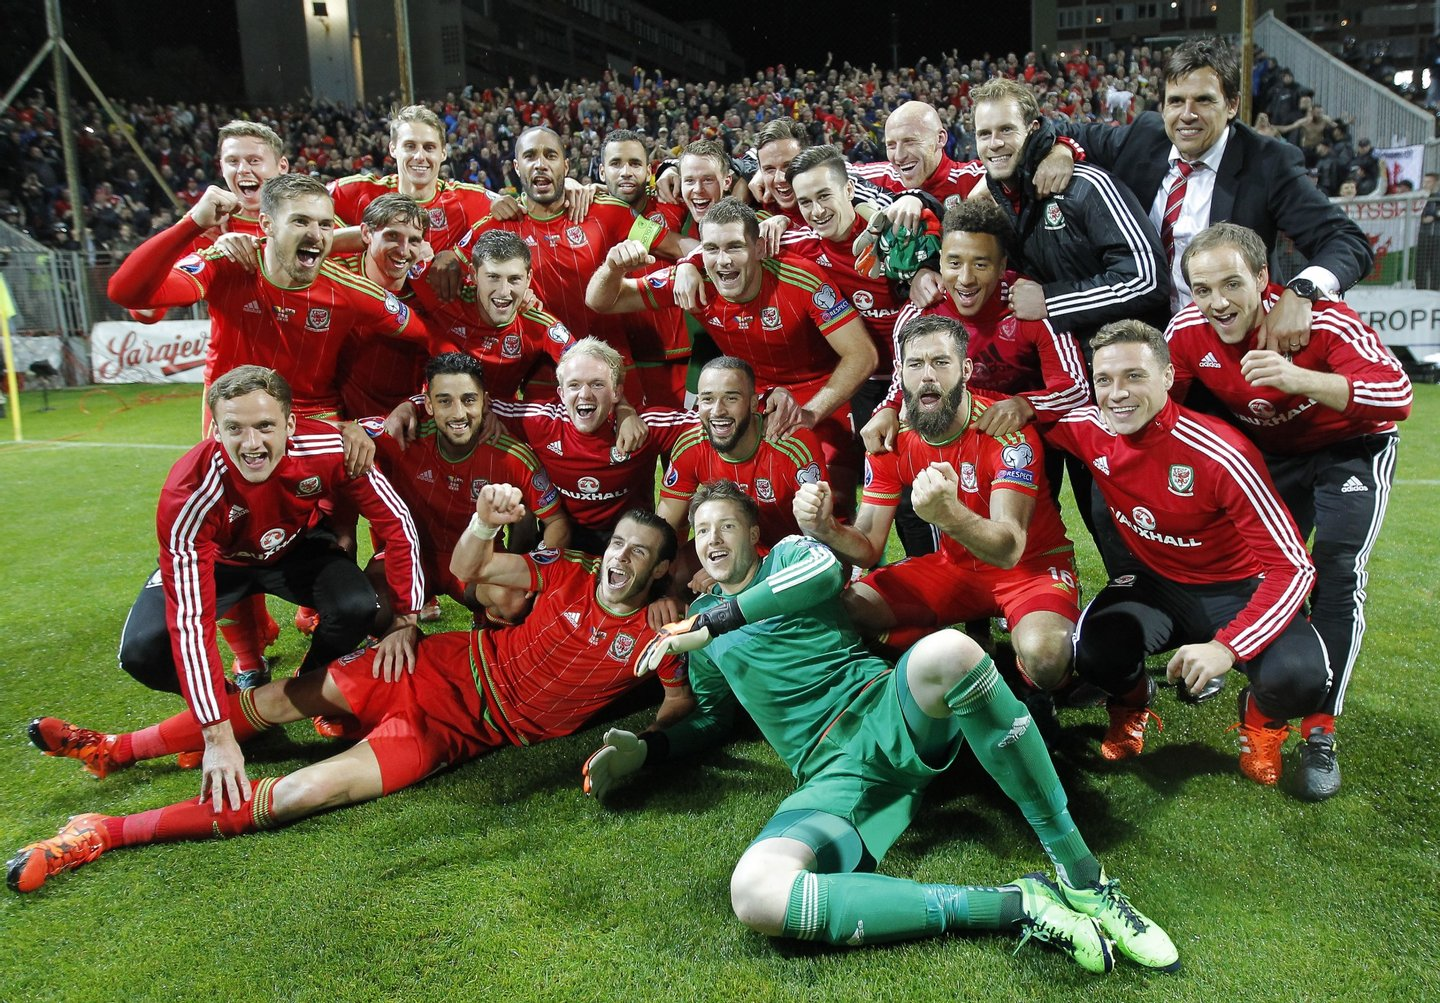 ZENICA, BOSNIA AND HERZEGOVINA - OCTOBER 10: Players of Wales national team celebrate the Euro 2016 qualifying football match between Bosnia and Herzegovina and Wales at the Stadium Bilino Polje in Elbasan on October 10, 2015. (Photo by Srdjan Stevanovic/Getty Images)